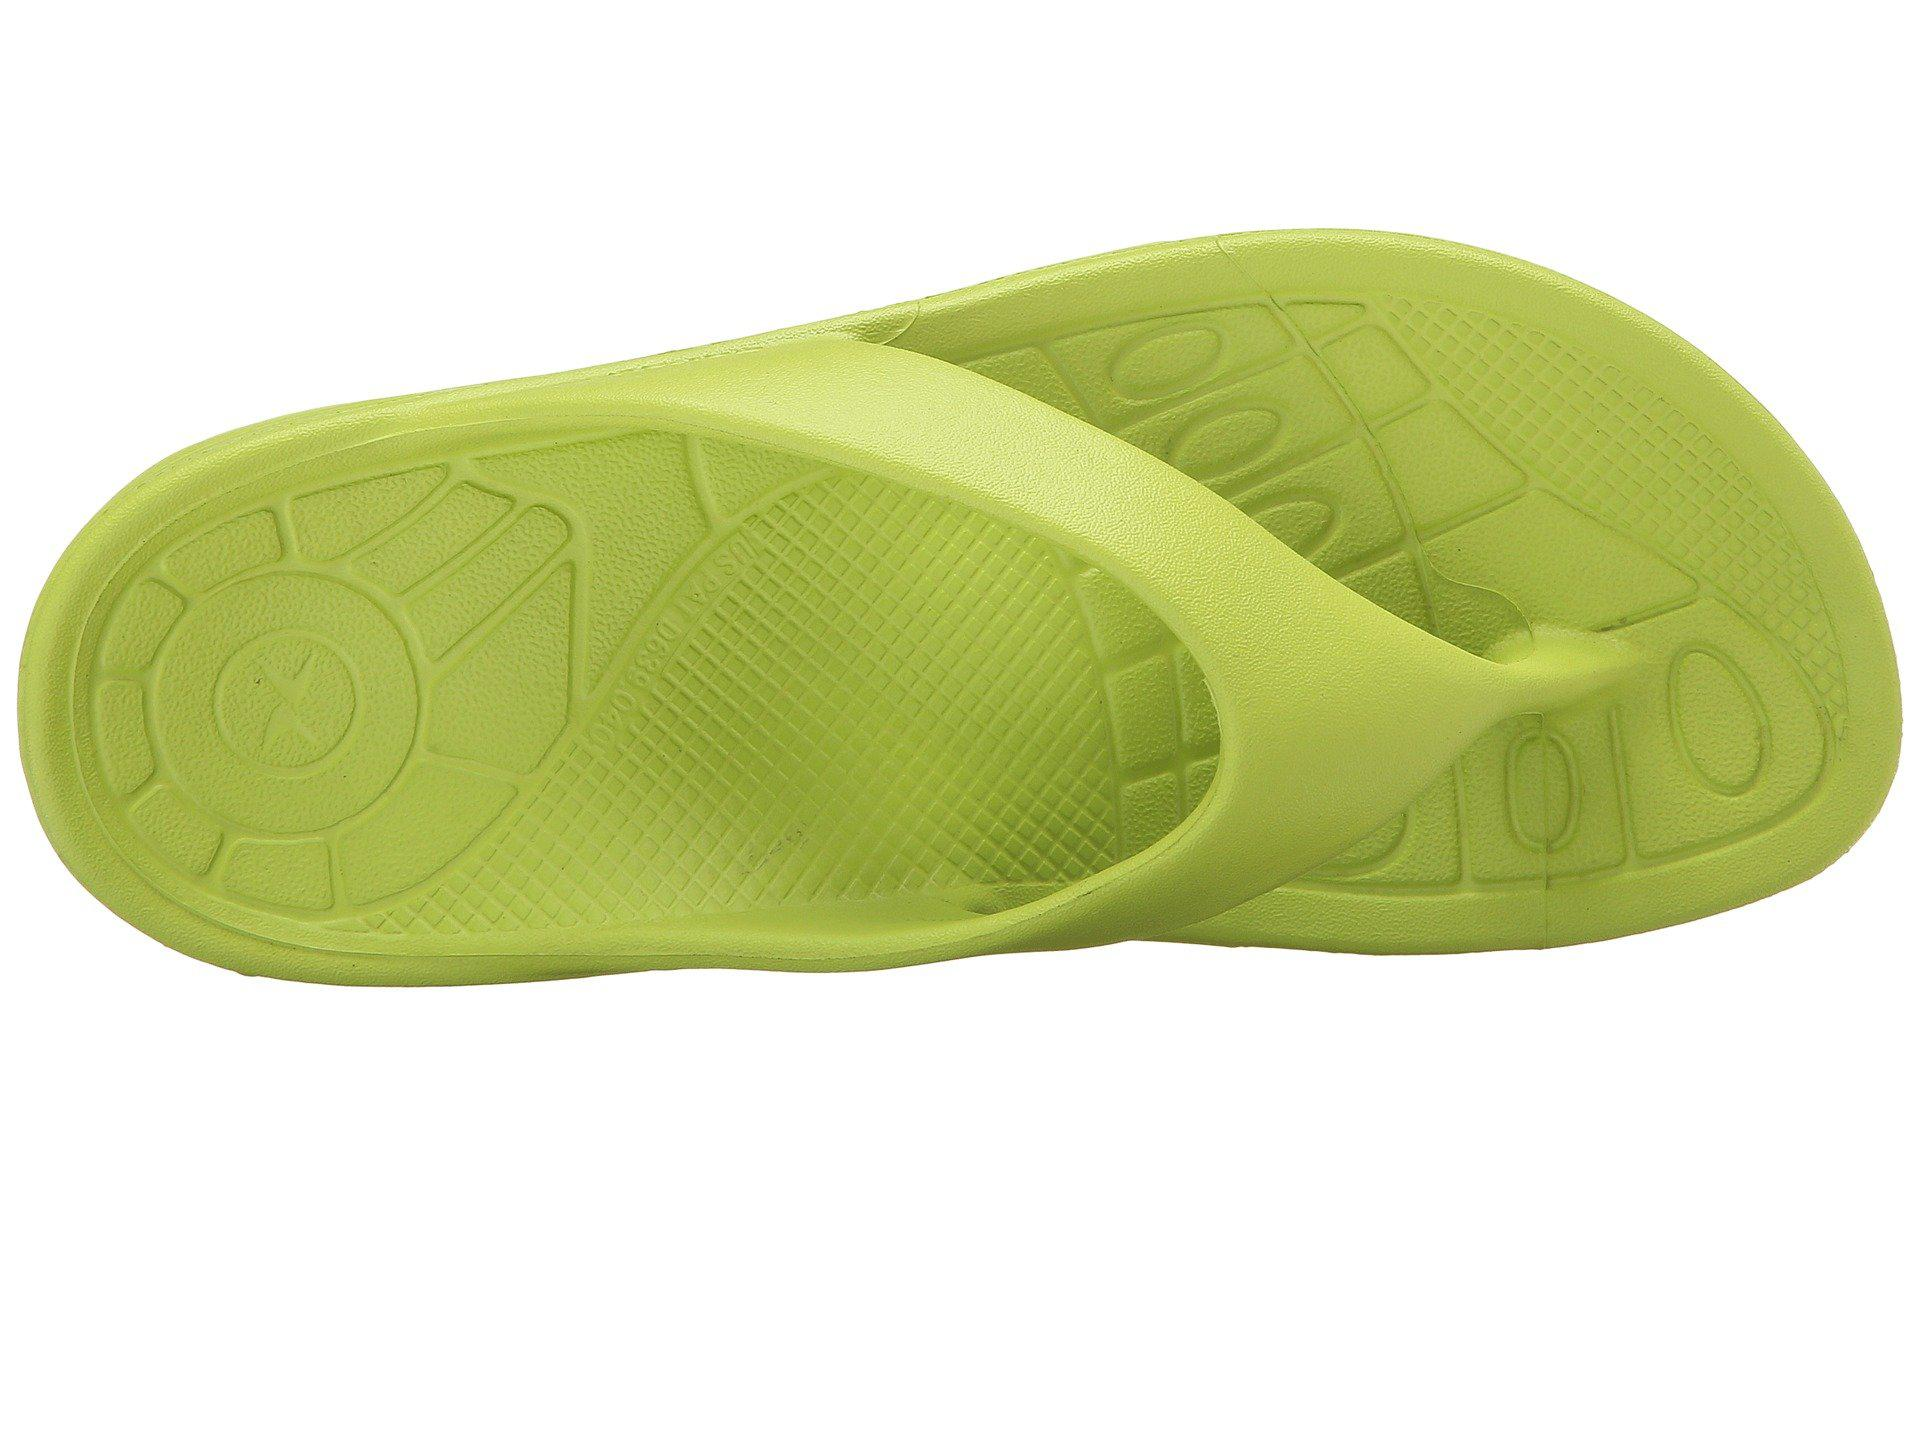 4234a67652d4 Aetrex - Green Lynco Flip (grey) Women s Sandals - Lyst. View fullscreen